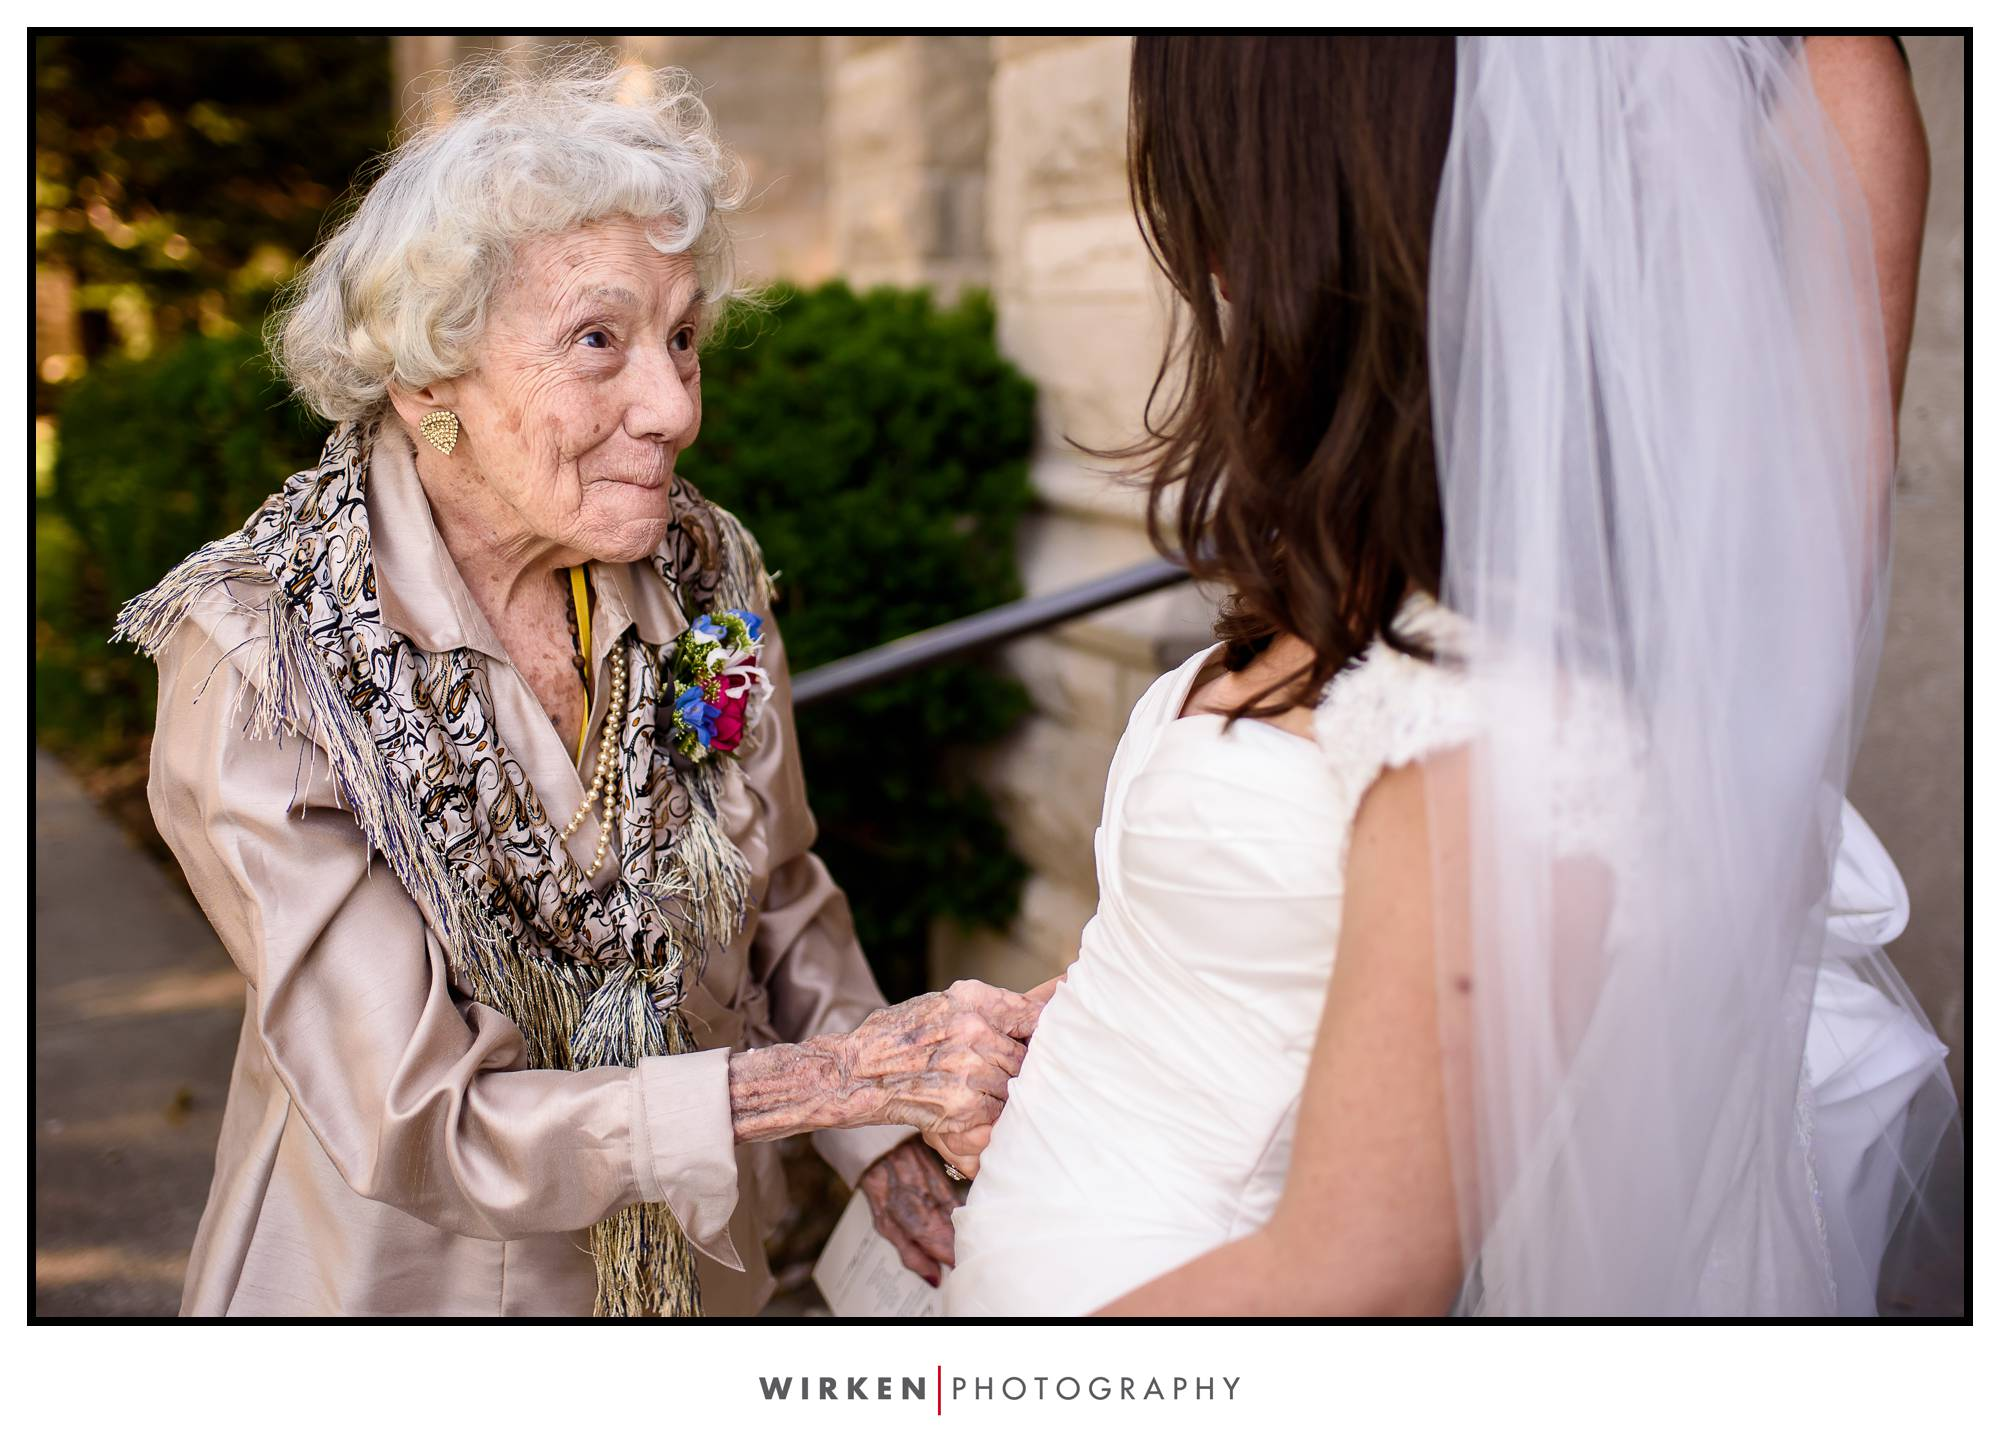 Grandma excited at her granddaughters wedding. Wedding photojournalism by documentary photographer, Tyler Wirken of Wirken Photo.